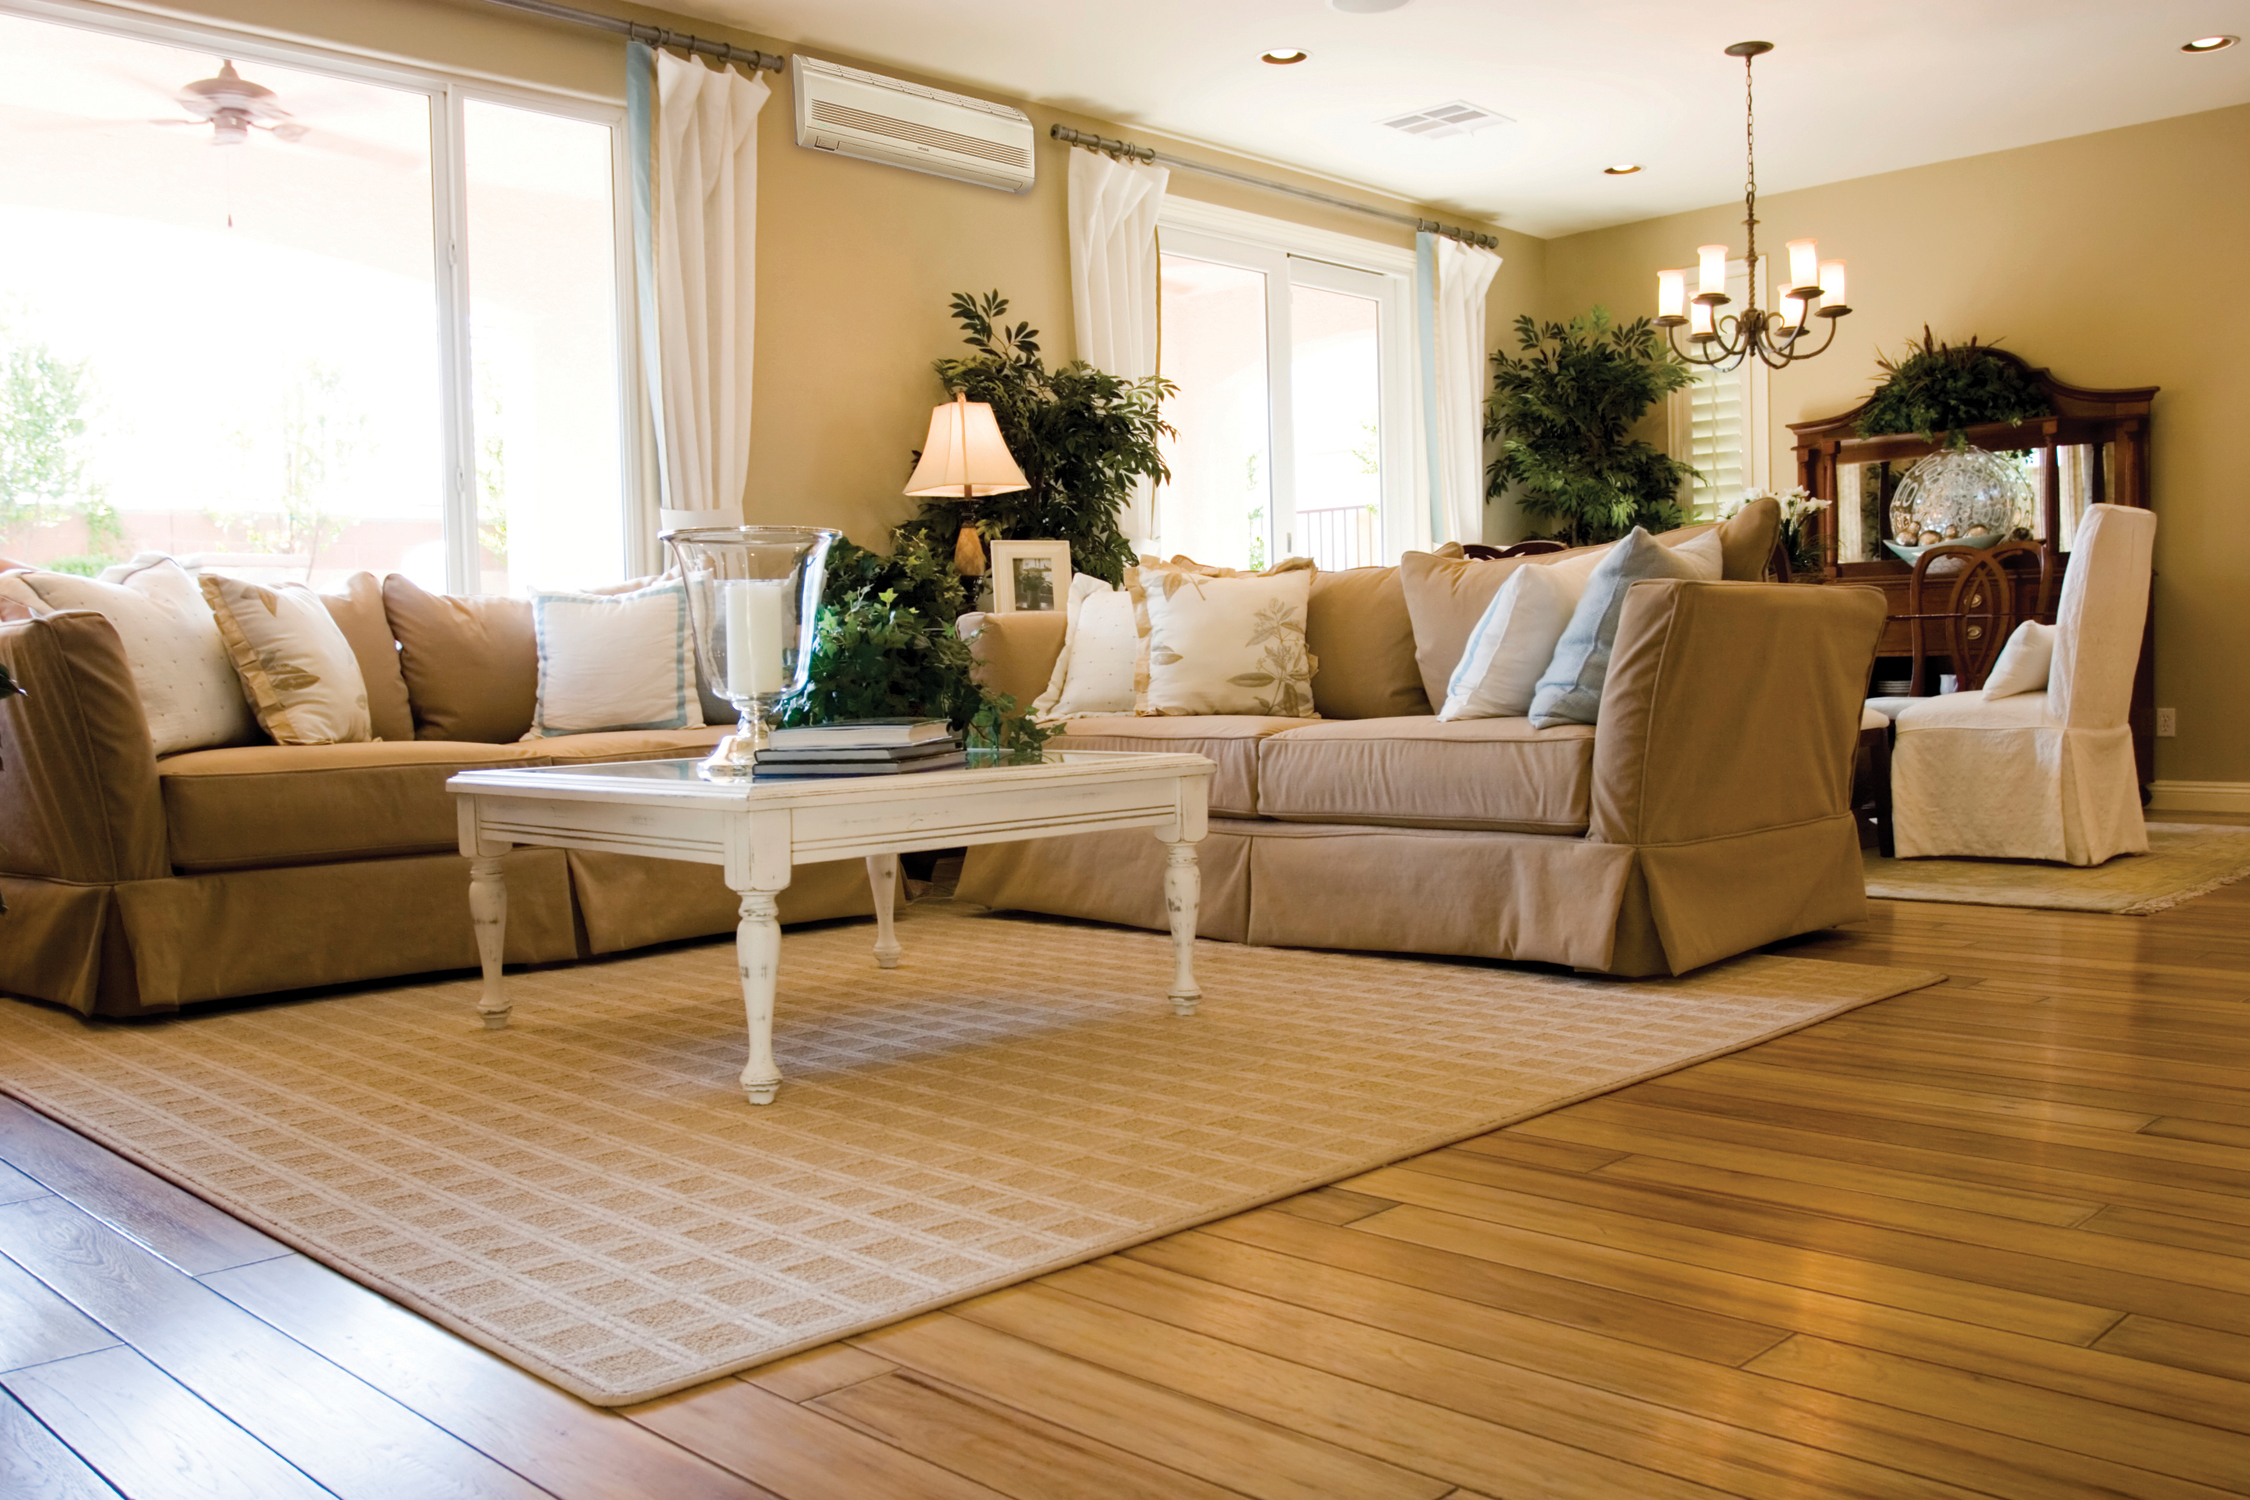 Beautiful Wooden Floors Living Room Mop For Wood Beige Tone Decorative Green Plants